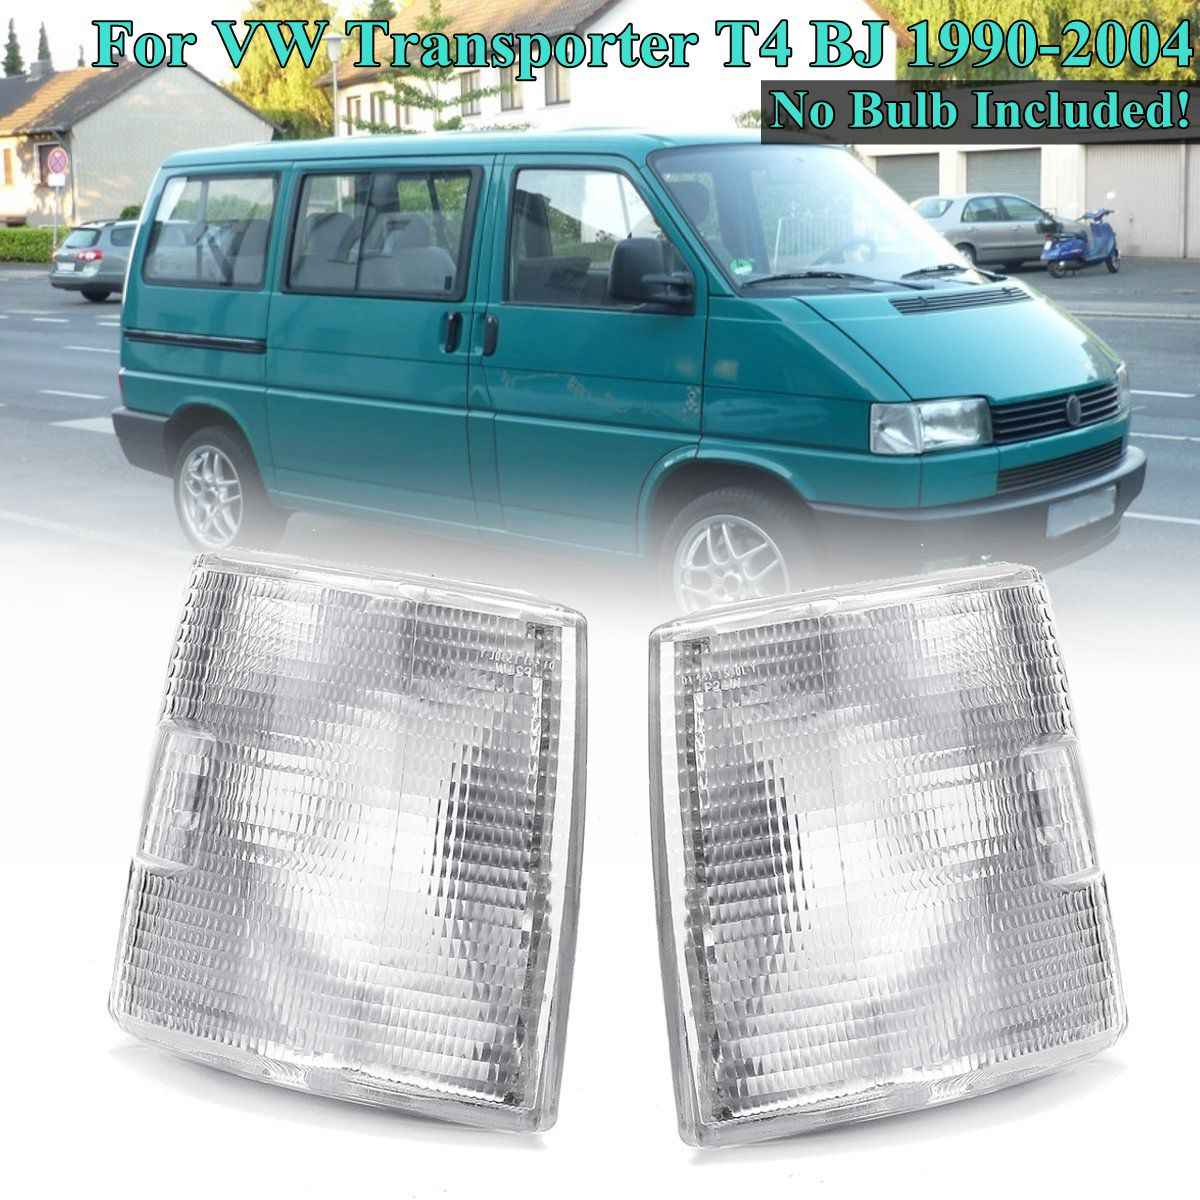 hight resolution of 1 pair front corner lights indicator signal lamps for vw transporter t4 1990 1991 1992 1993